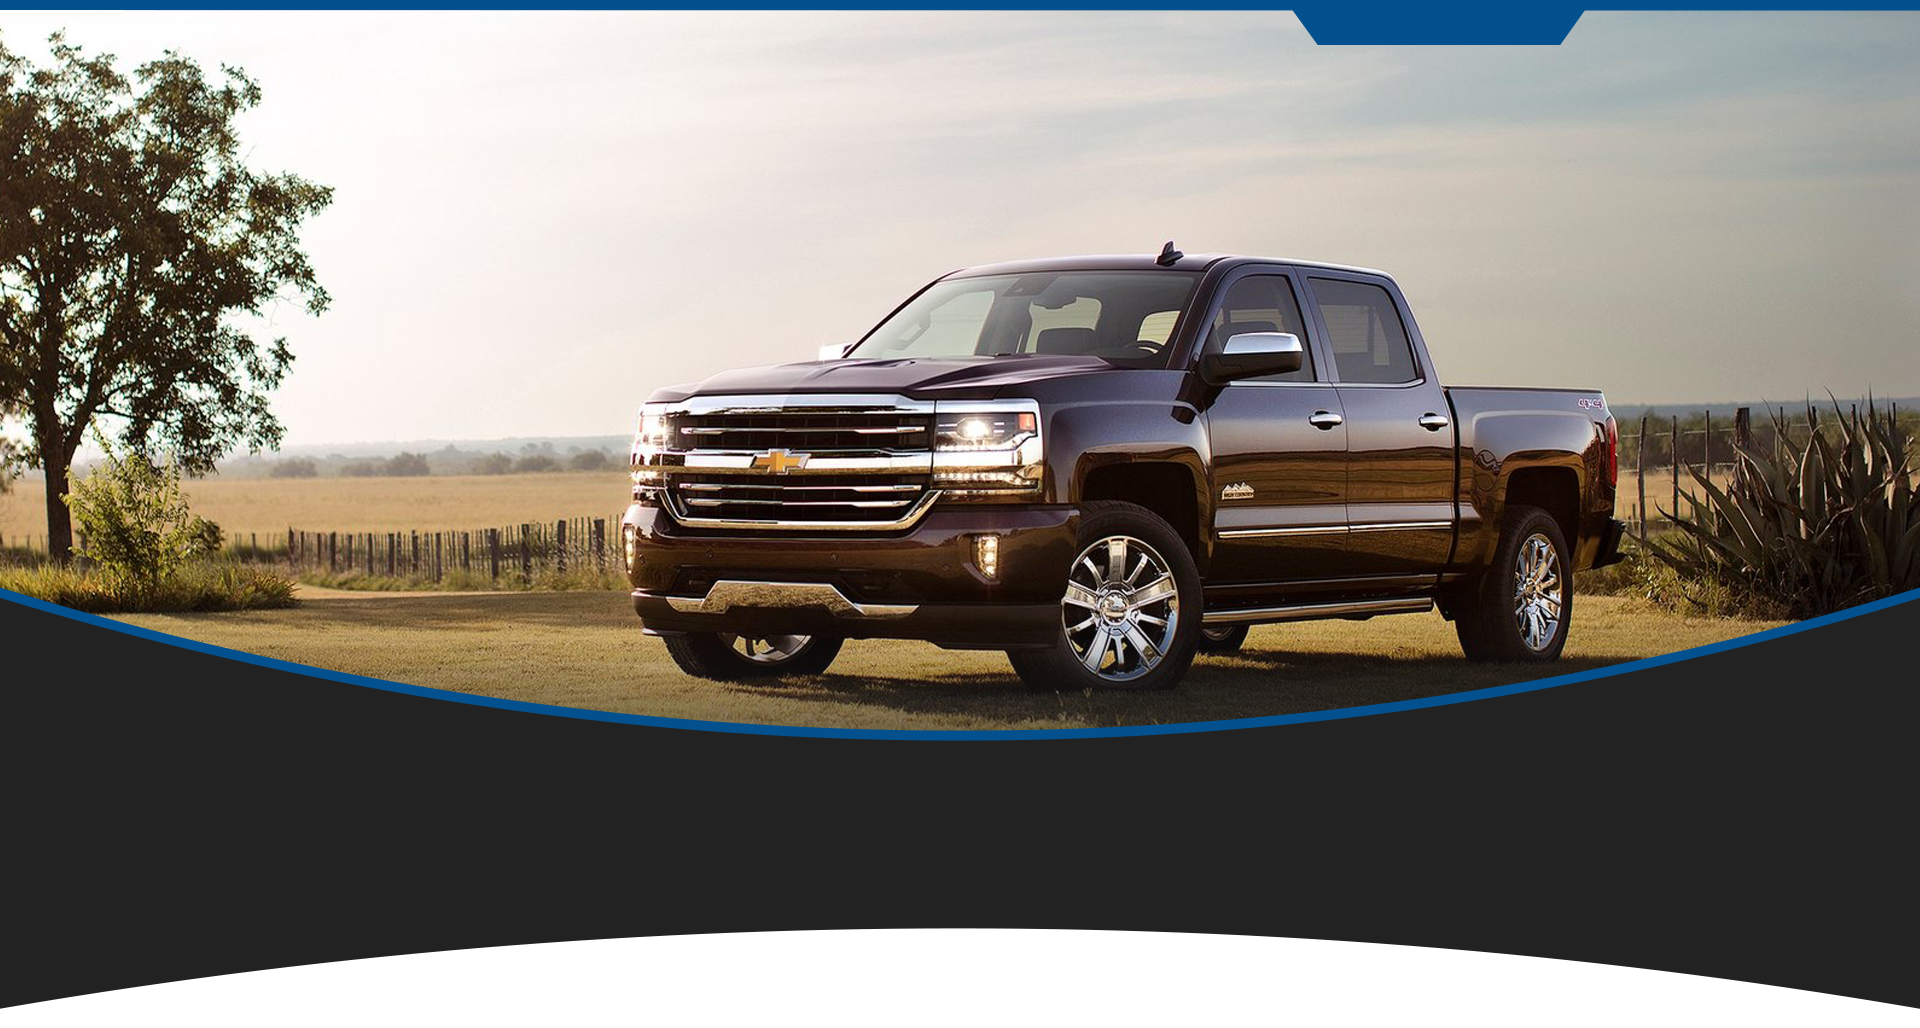 Used Pickups Under 5000 | Autos Post